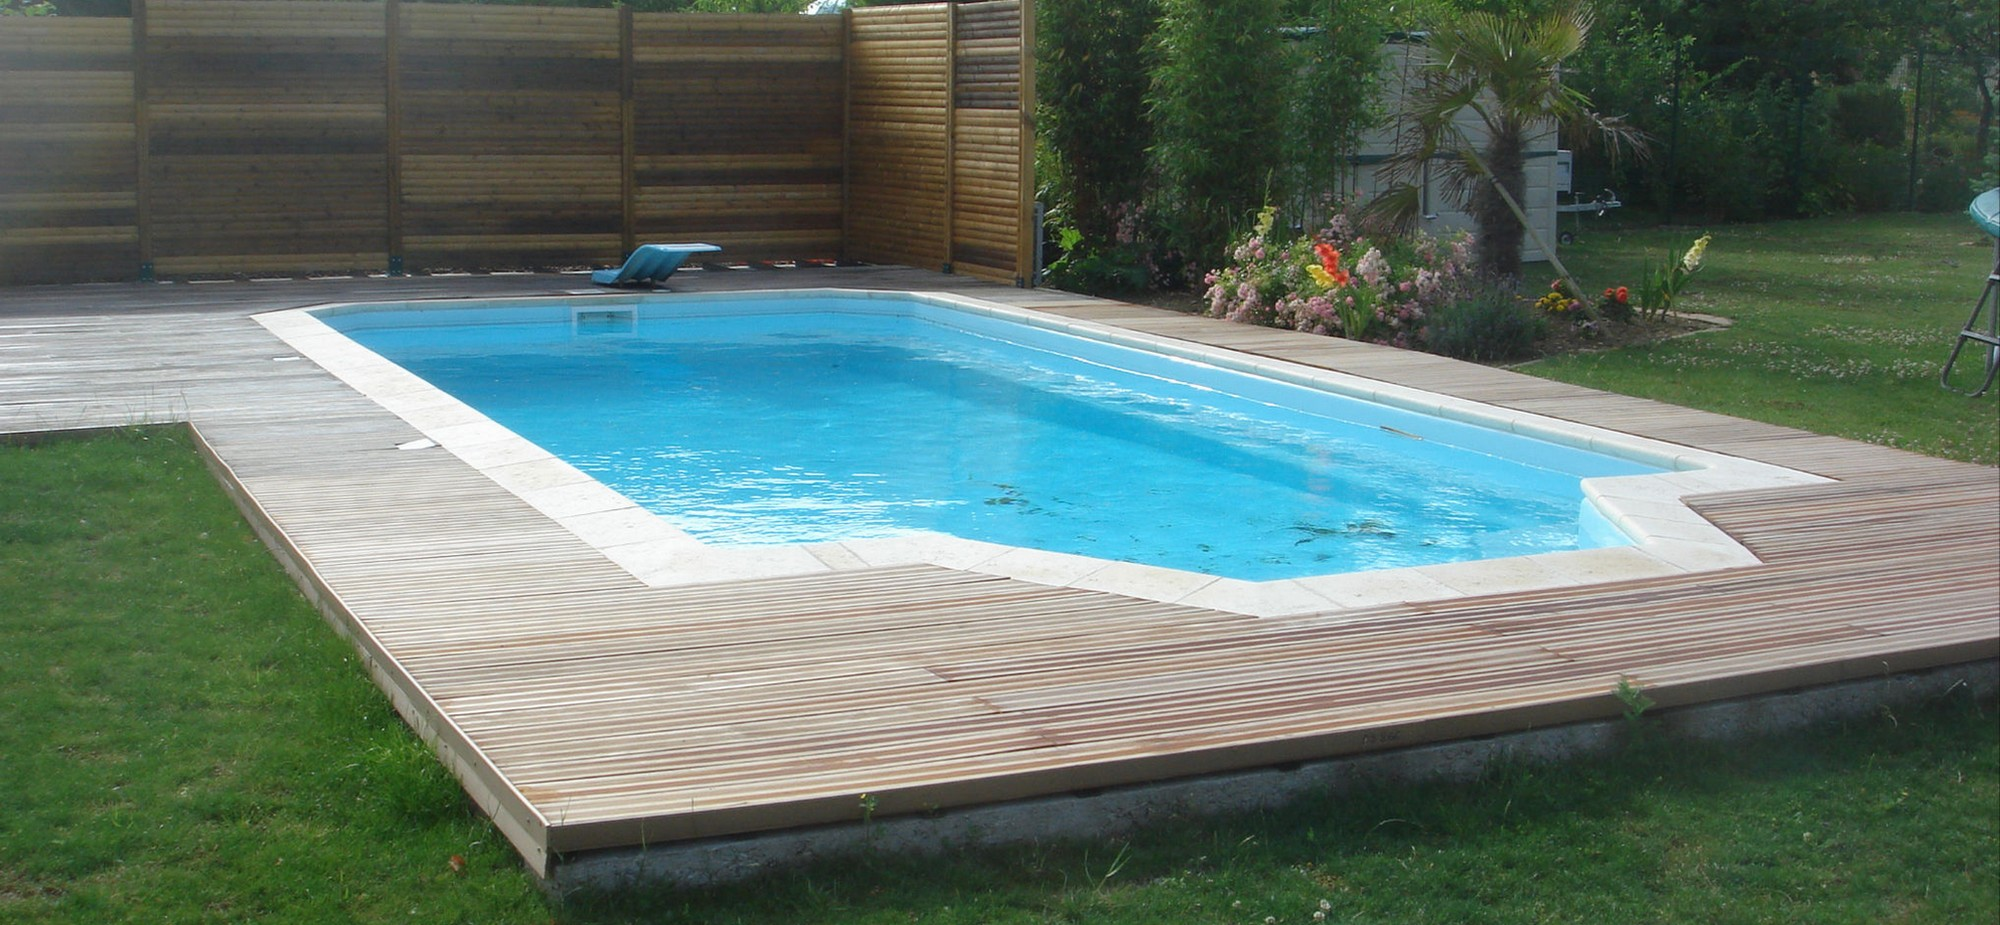 Piscine coque piscine coque picardie piscine for Piscine coque debordement